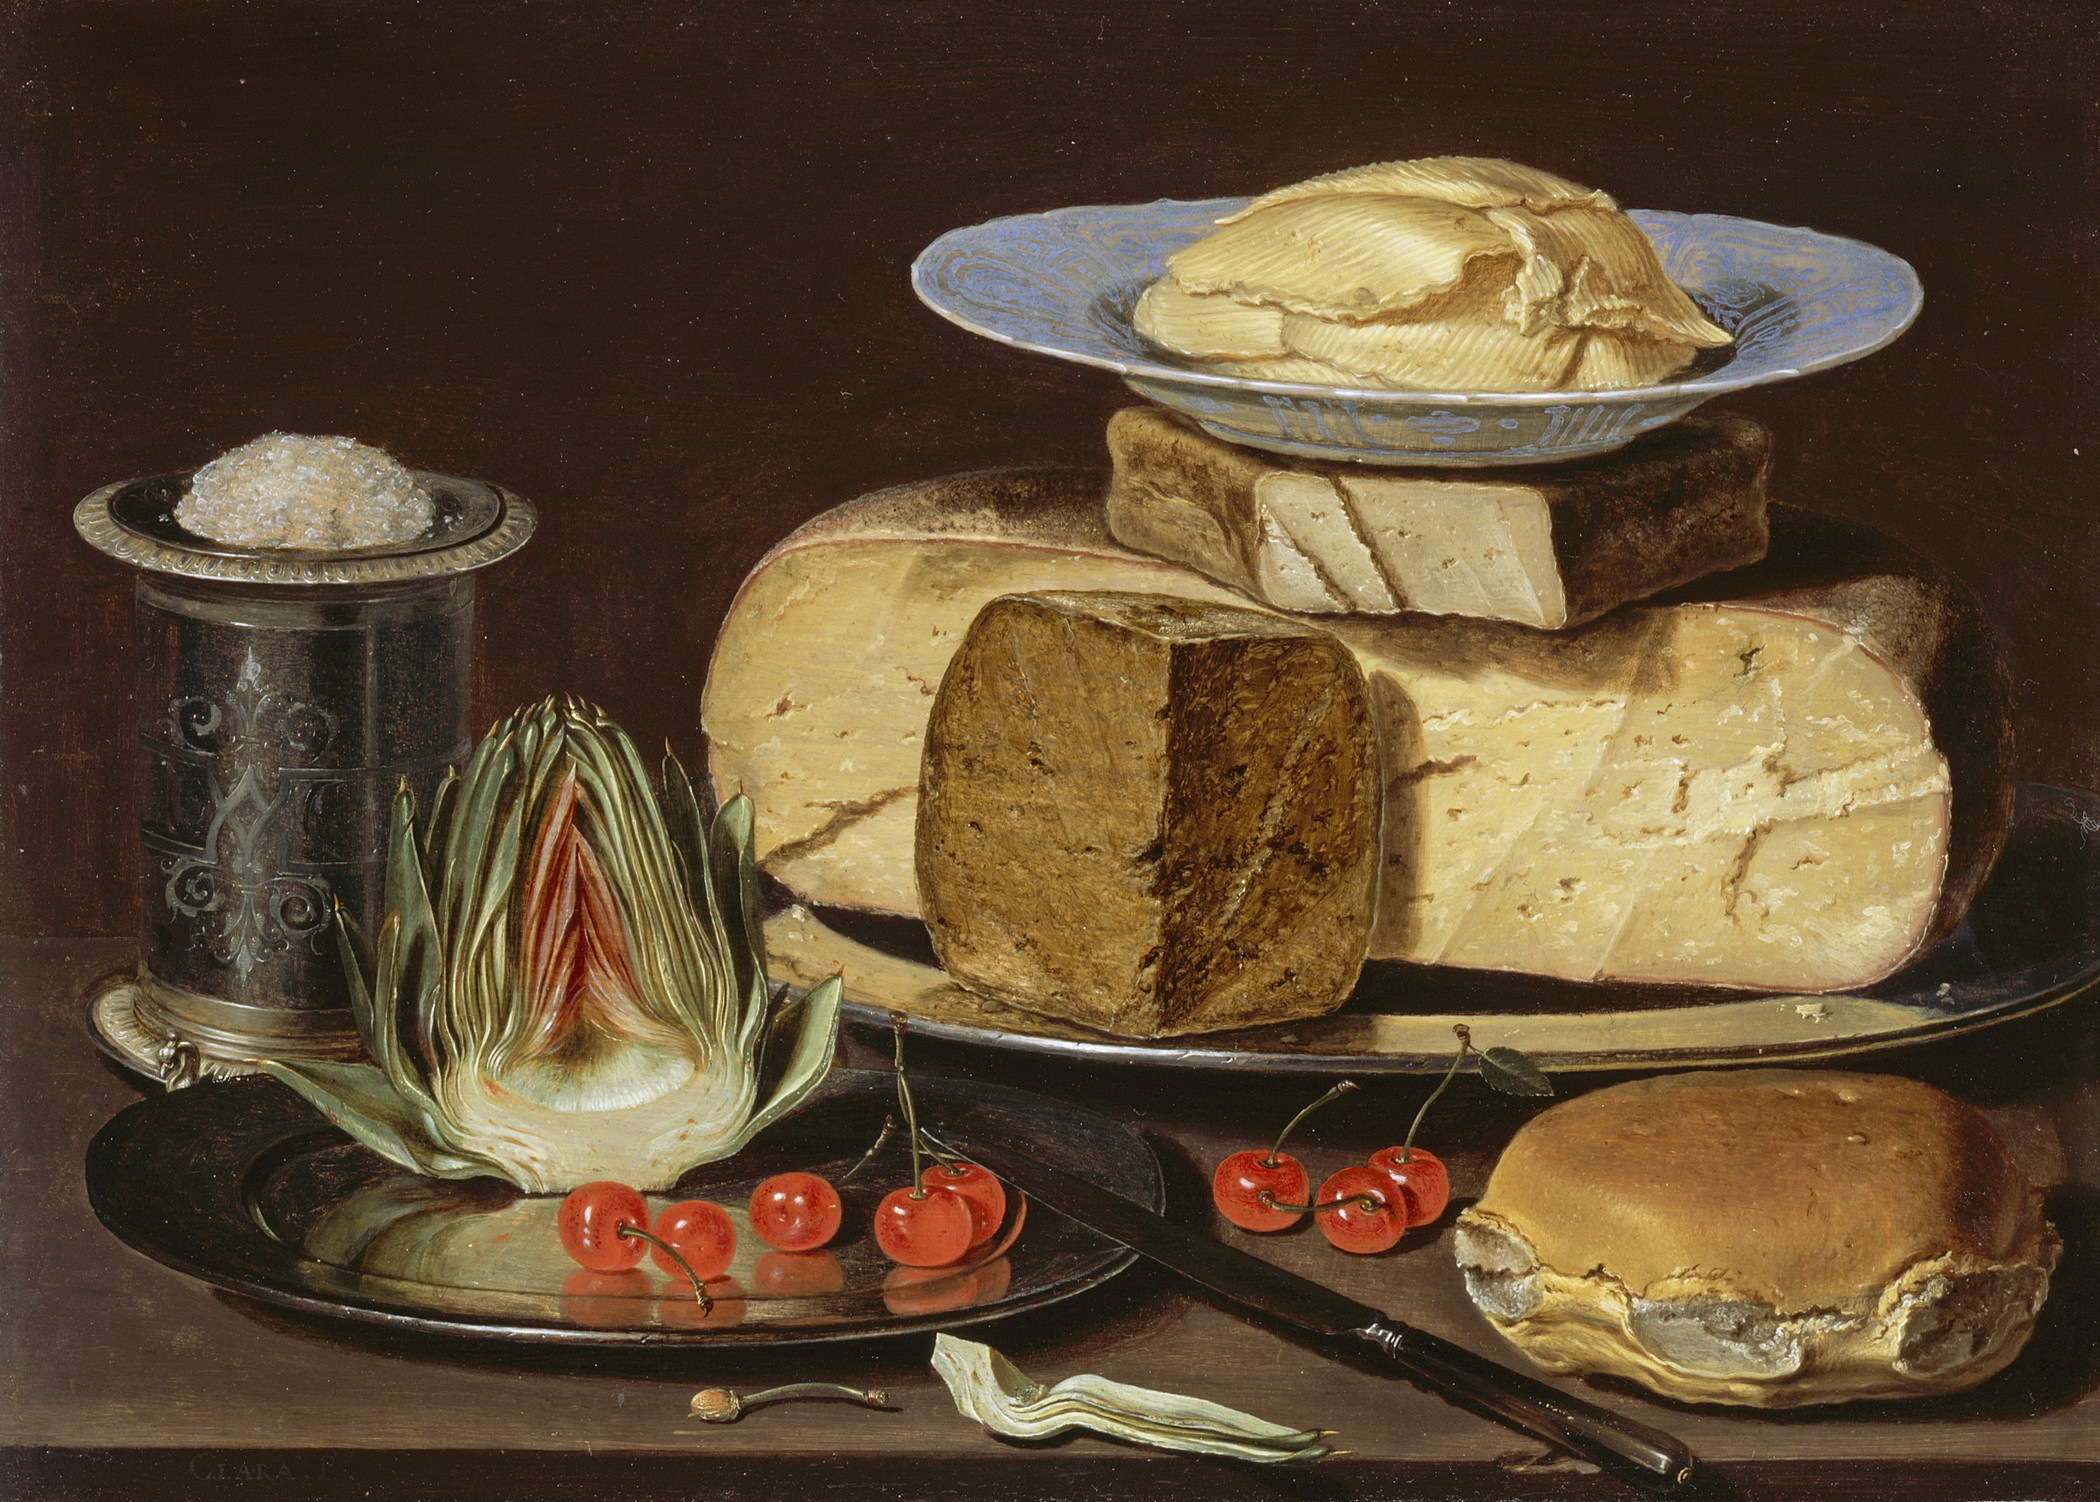 Still life painting with cheeses, artichokes and cherries.